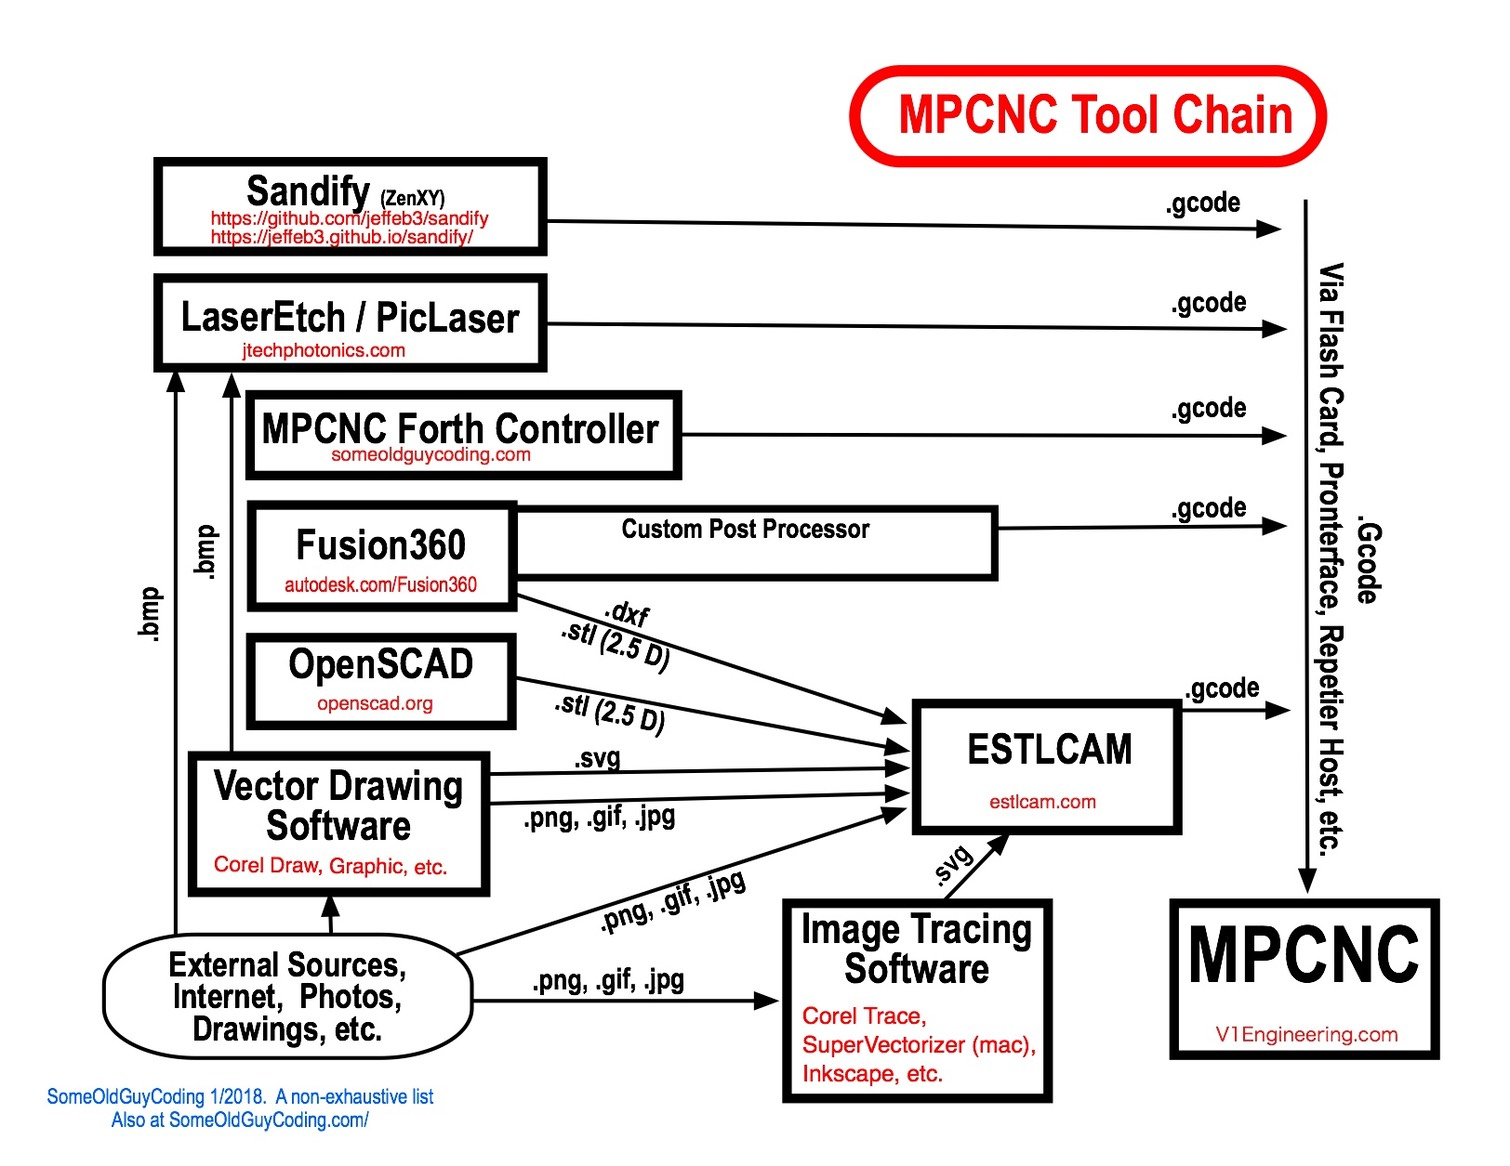 MPCNC Tool Chain | Some Old Guy Coding